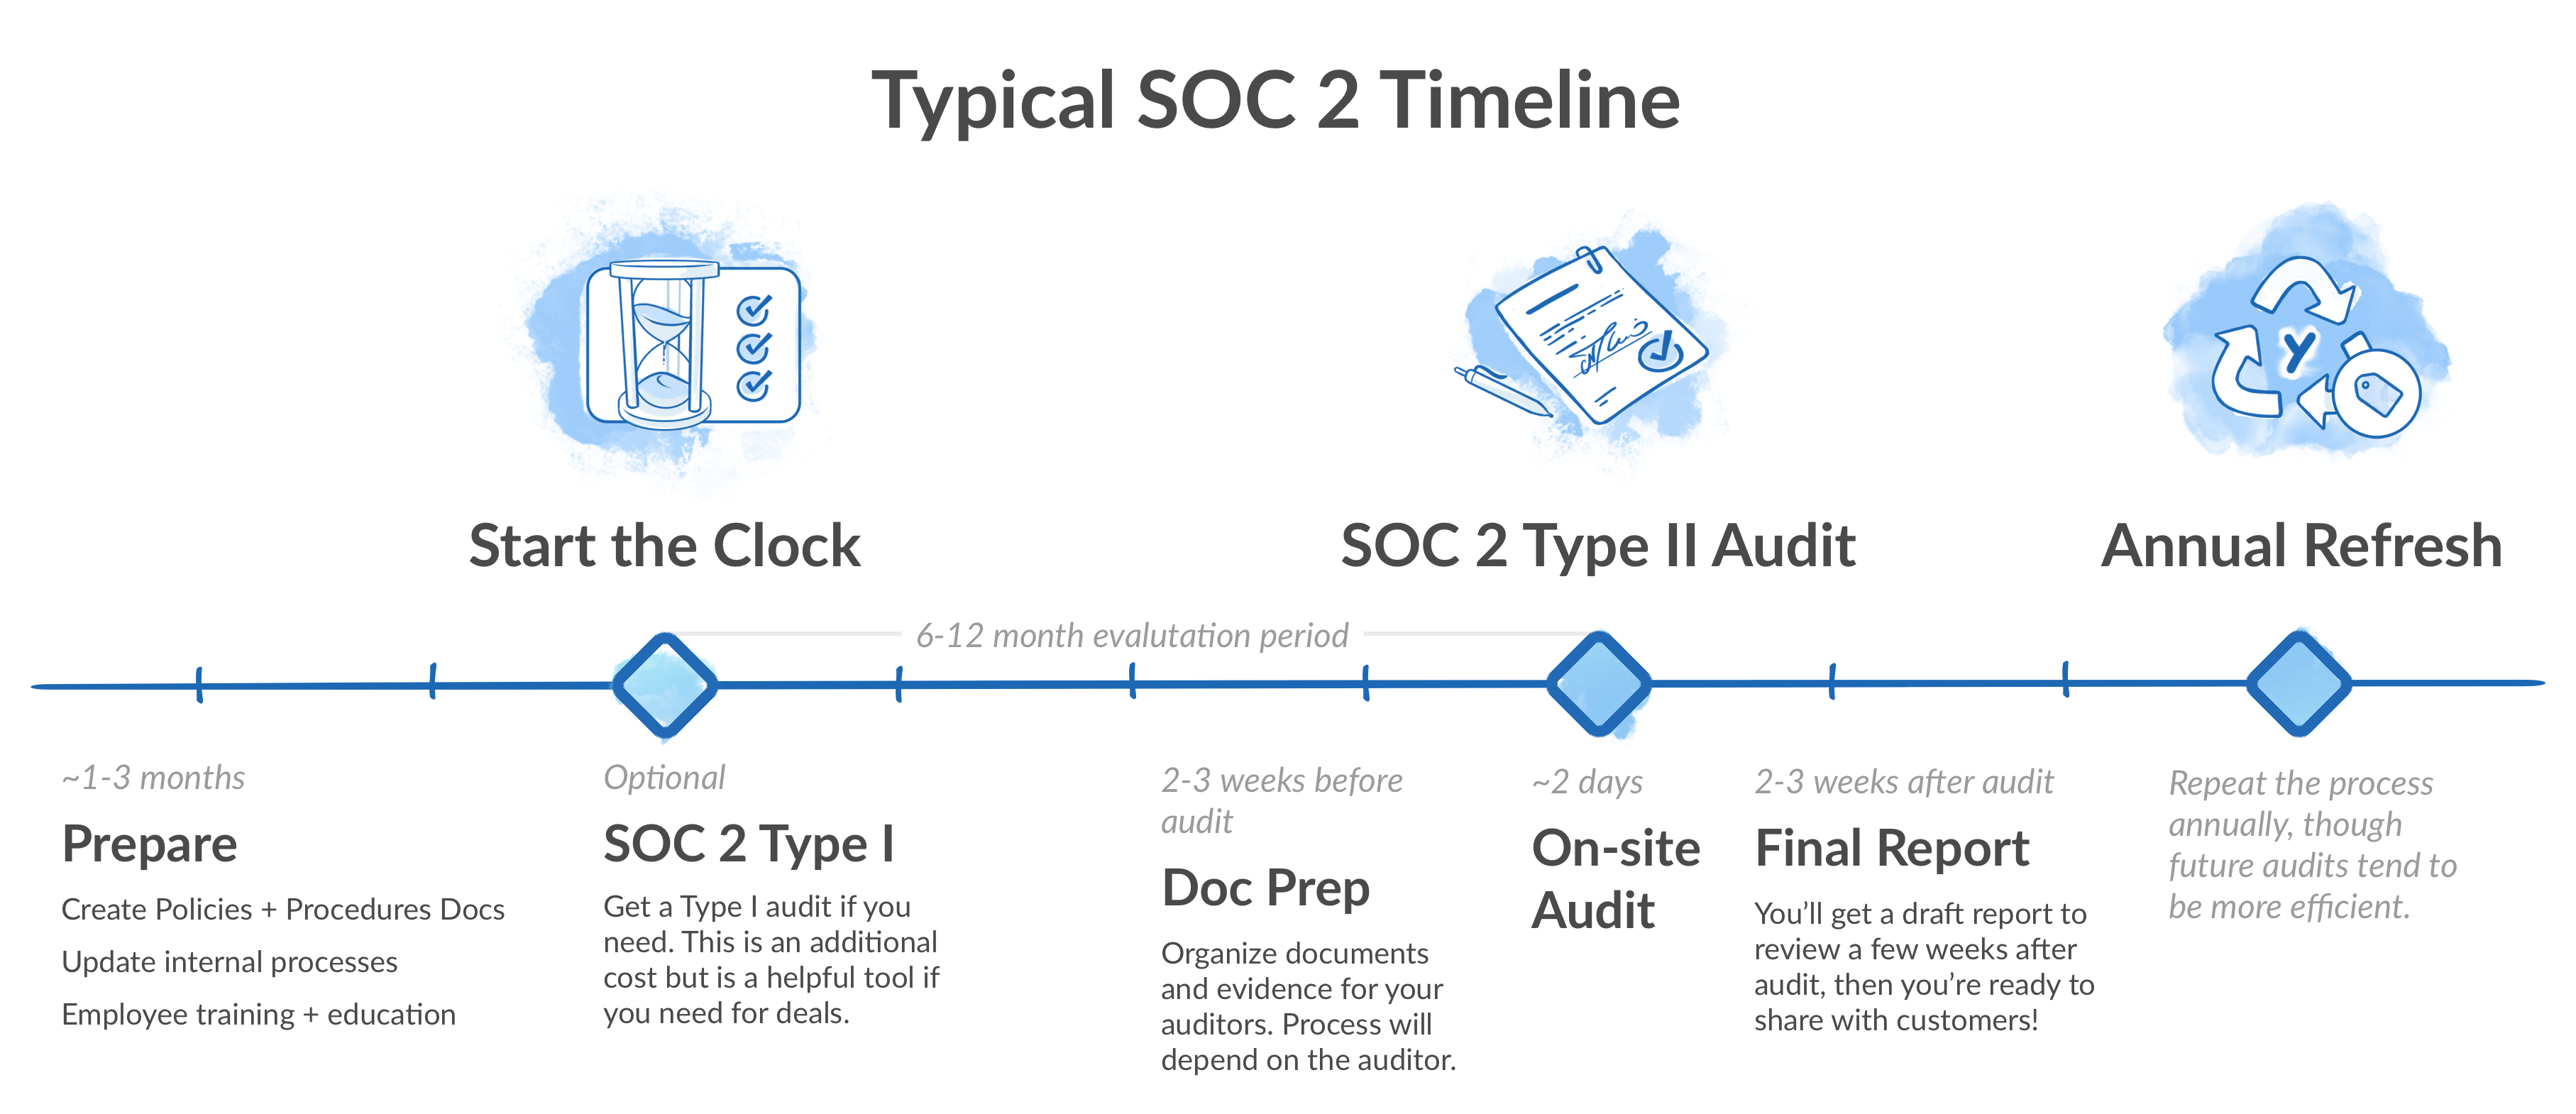 Typical SOC 2 Approaches Time Line